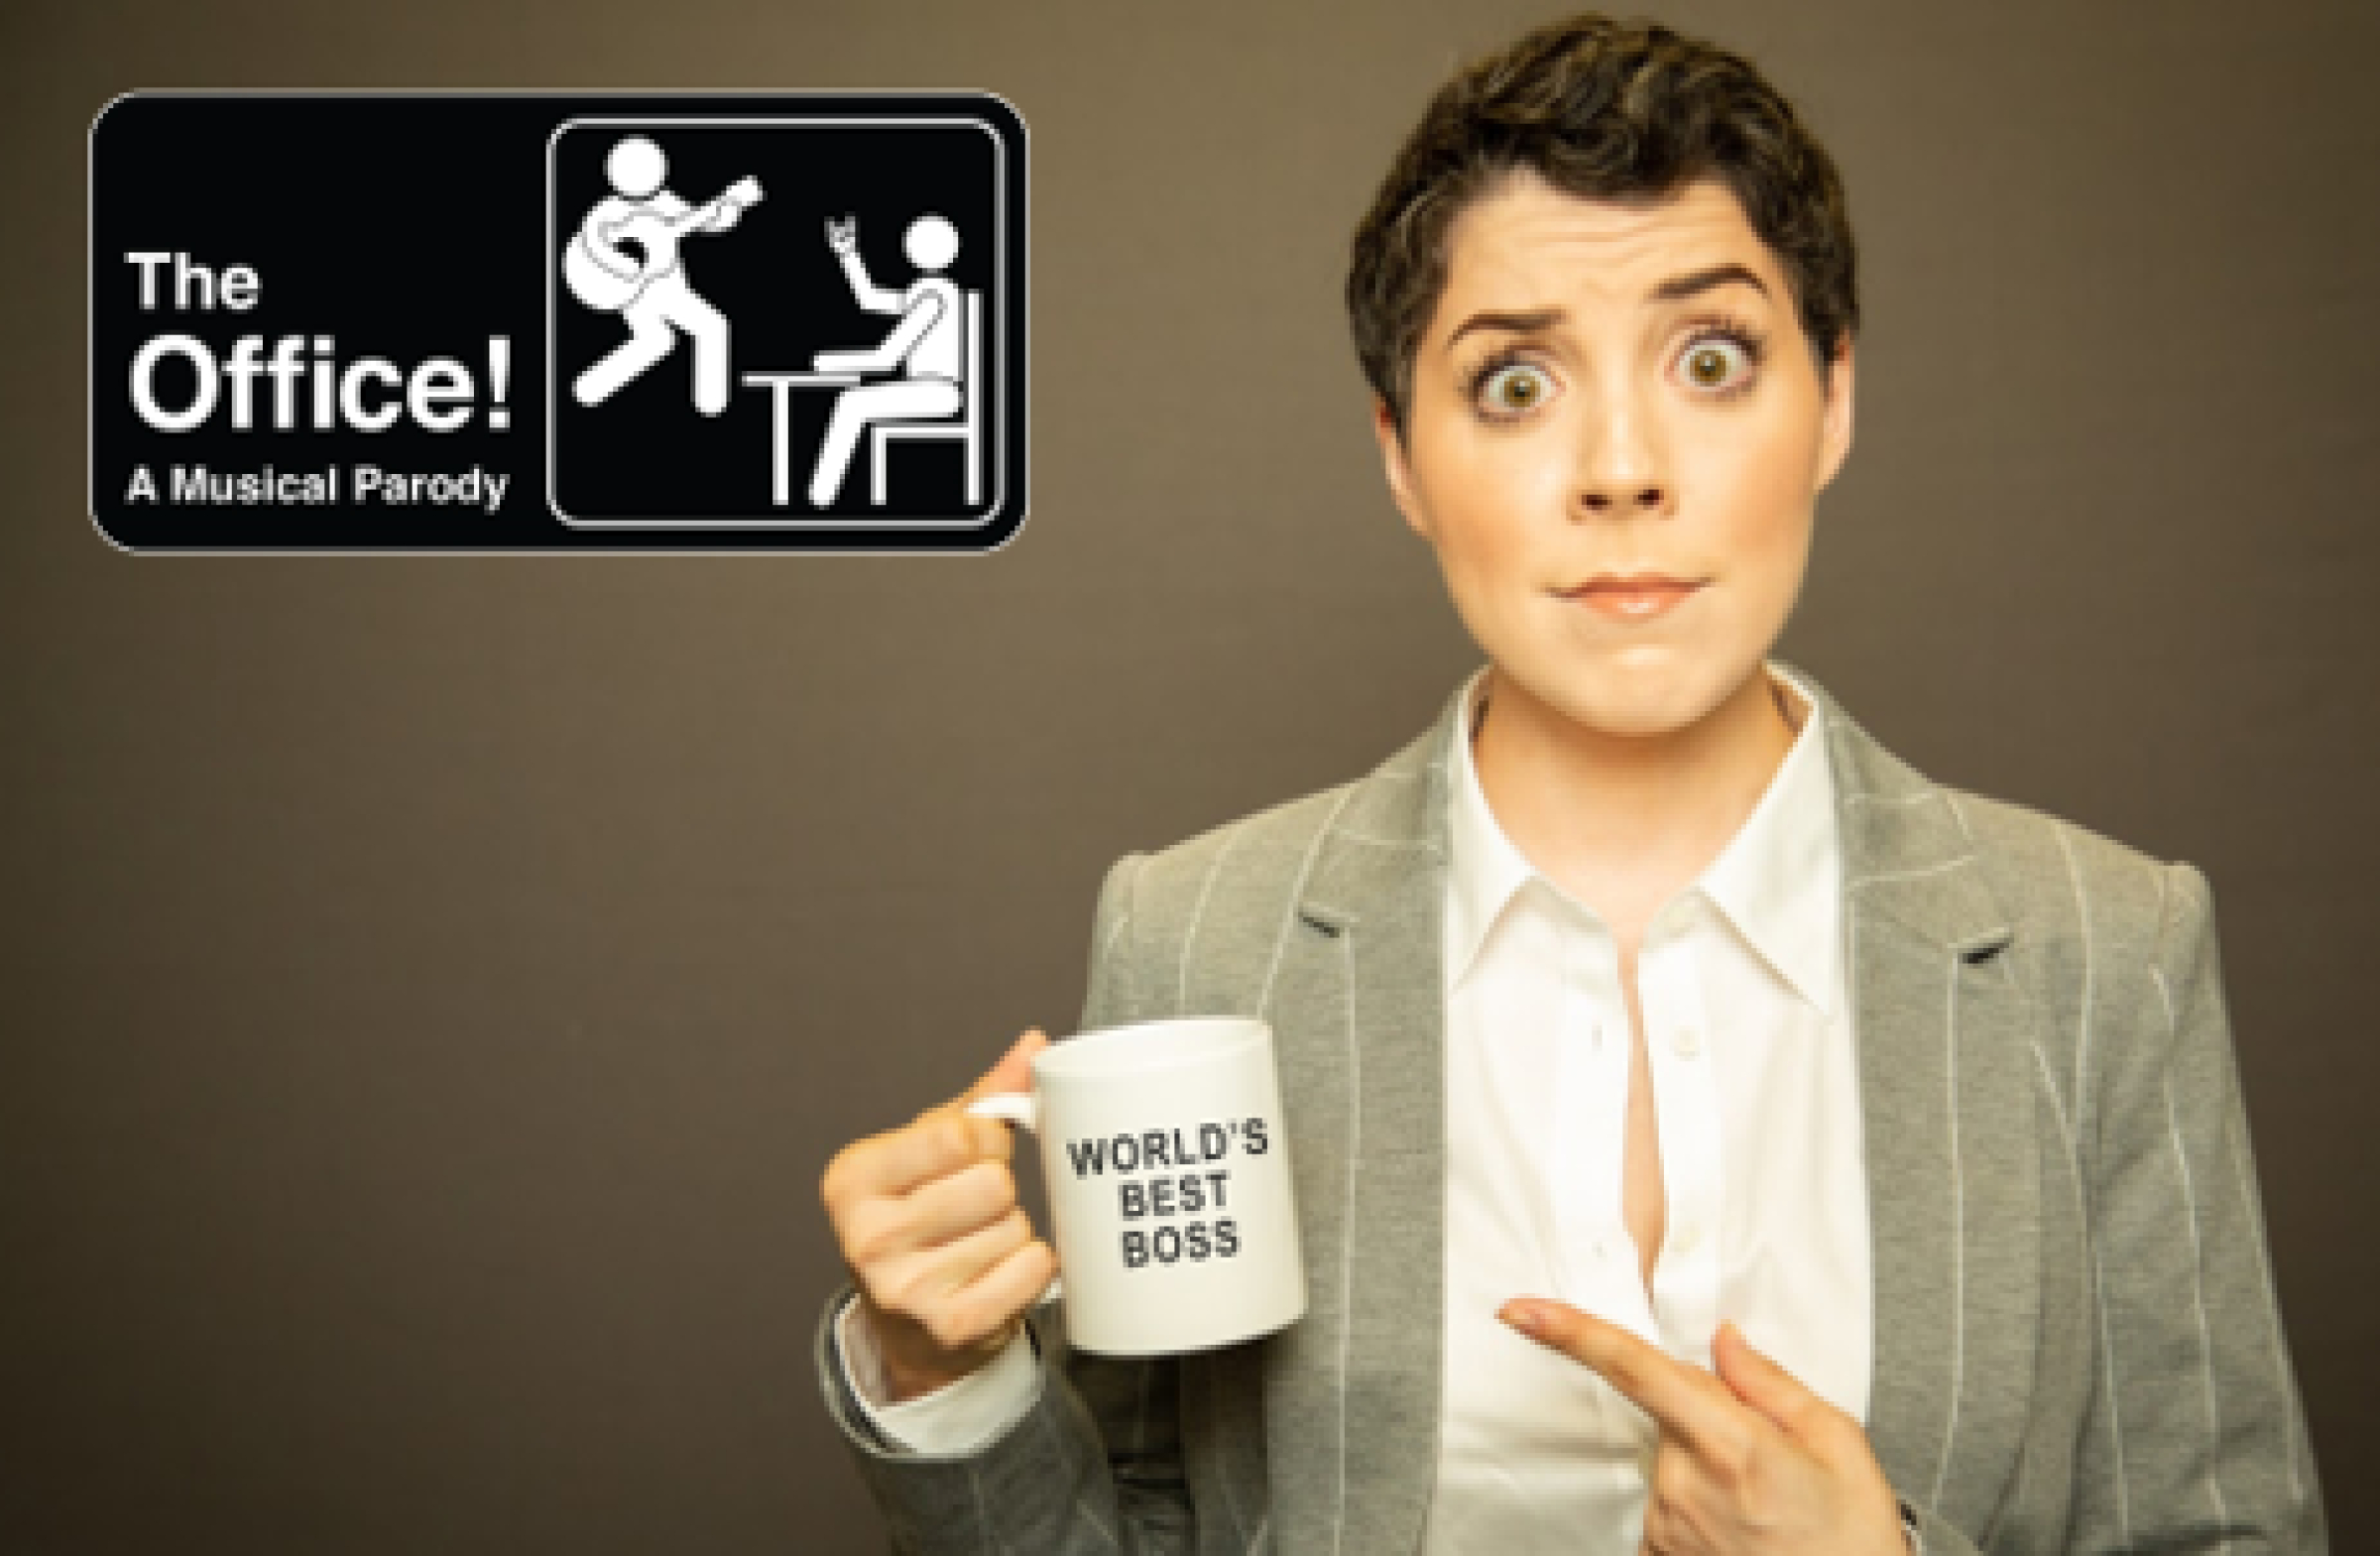 Angela Baron the office! a musical parody finds its michael scott